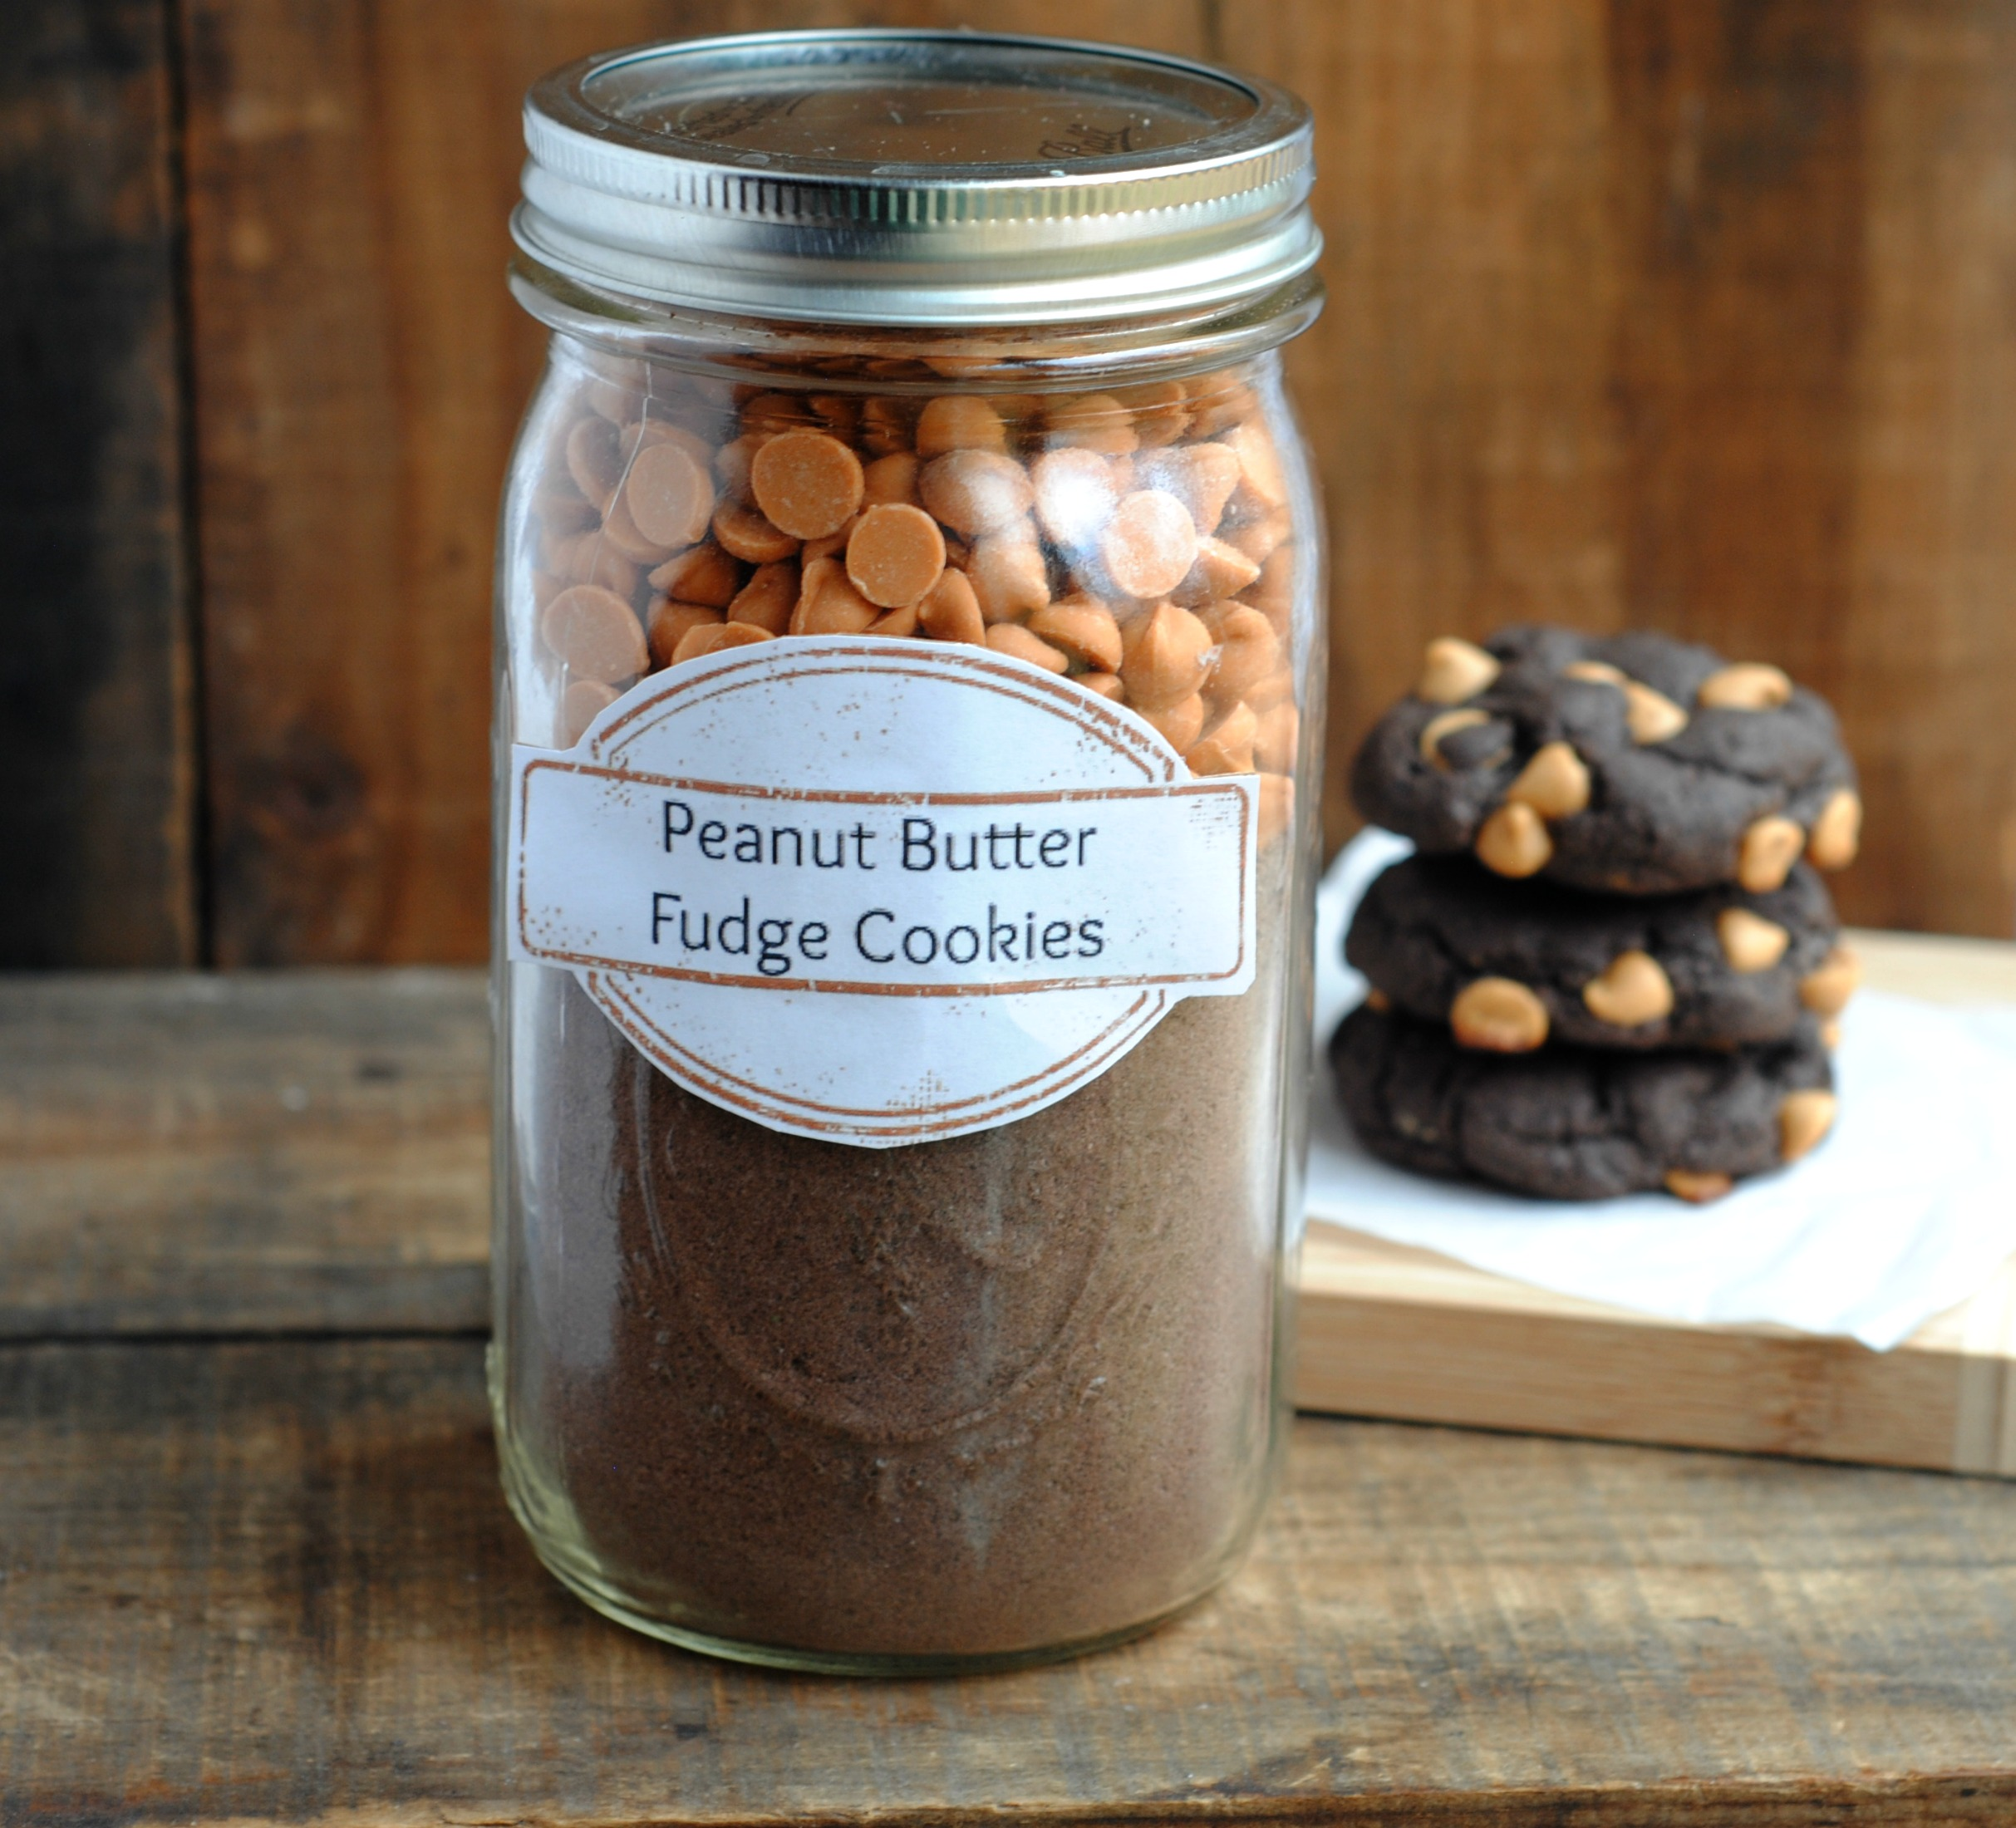 Diy Holiday Gift Idea Peanut Butter Fudge Cookie Mix In A Jar 9 Other Cookie Mix In A Jar Ideas Not Quite Susie Homemaker